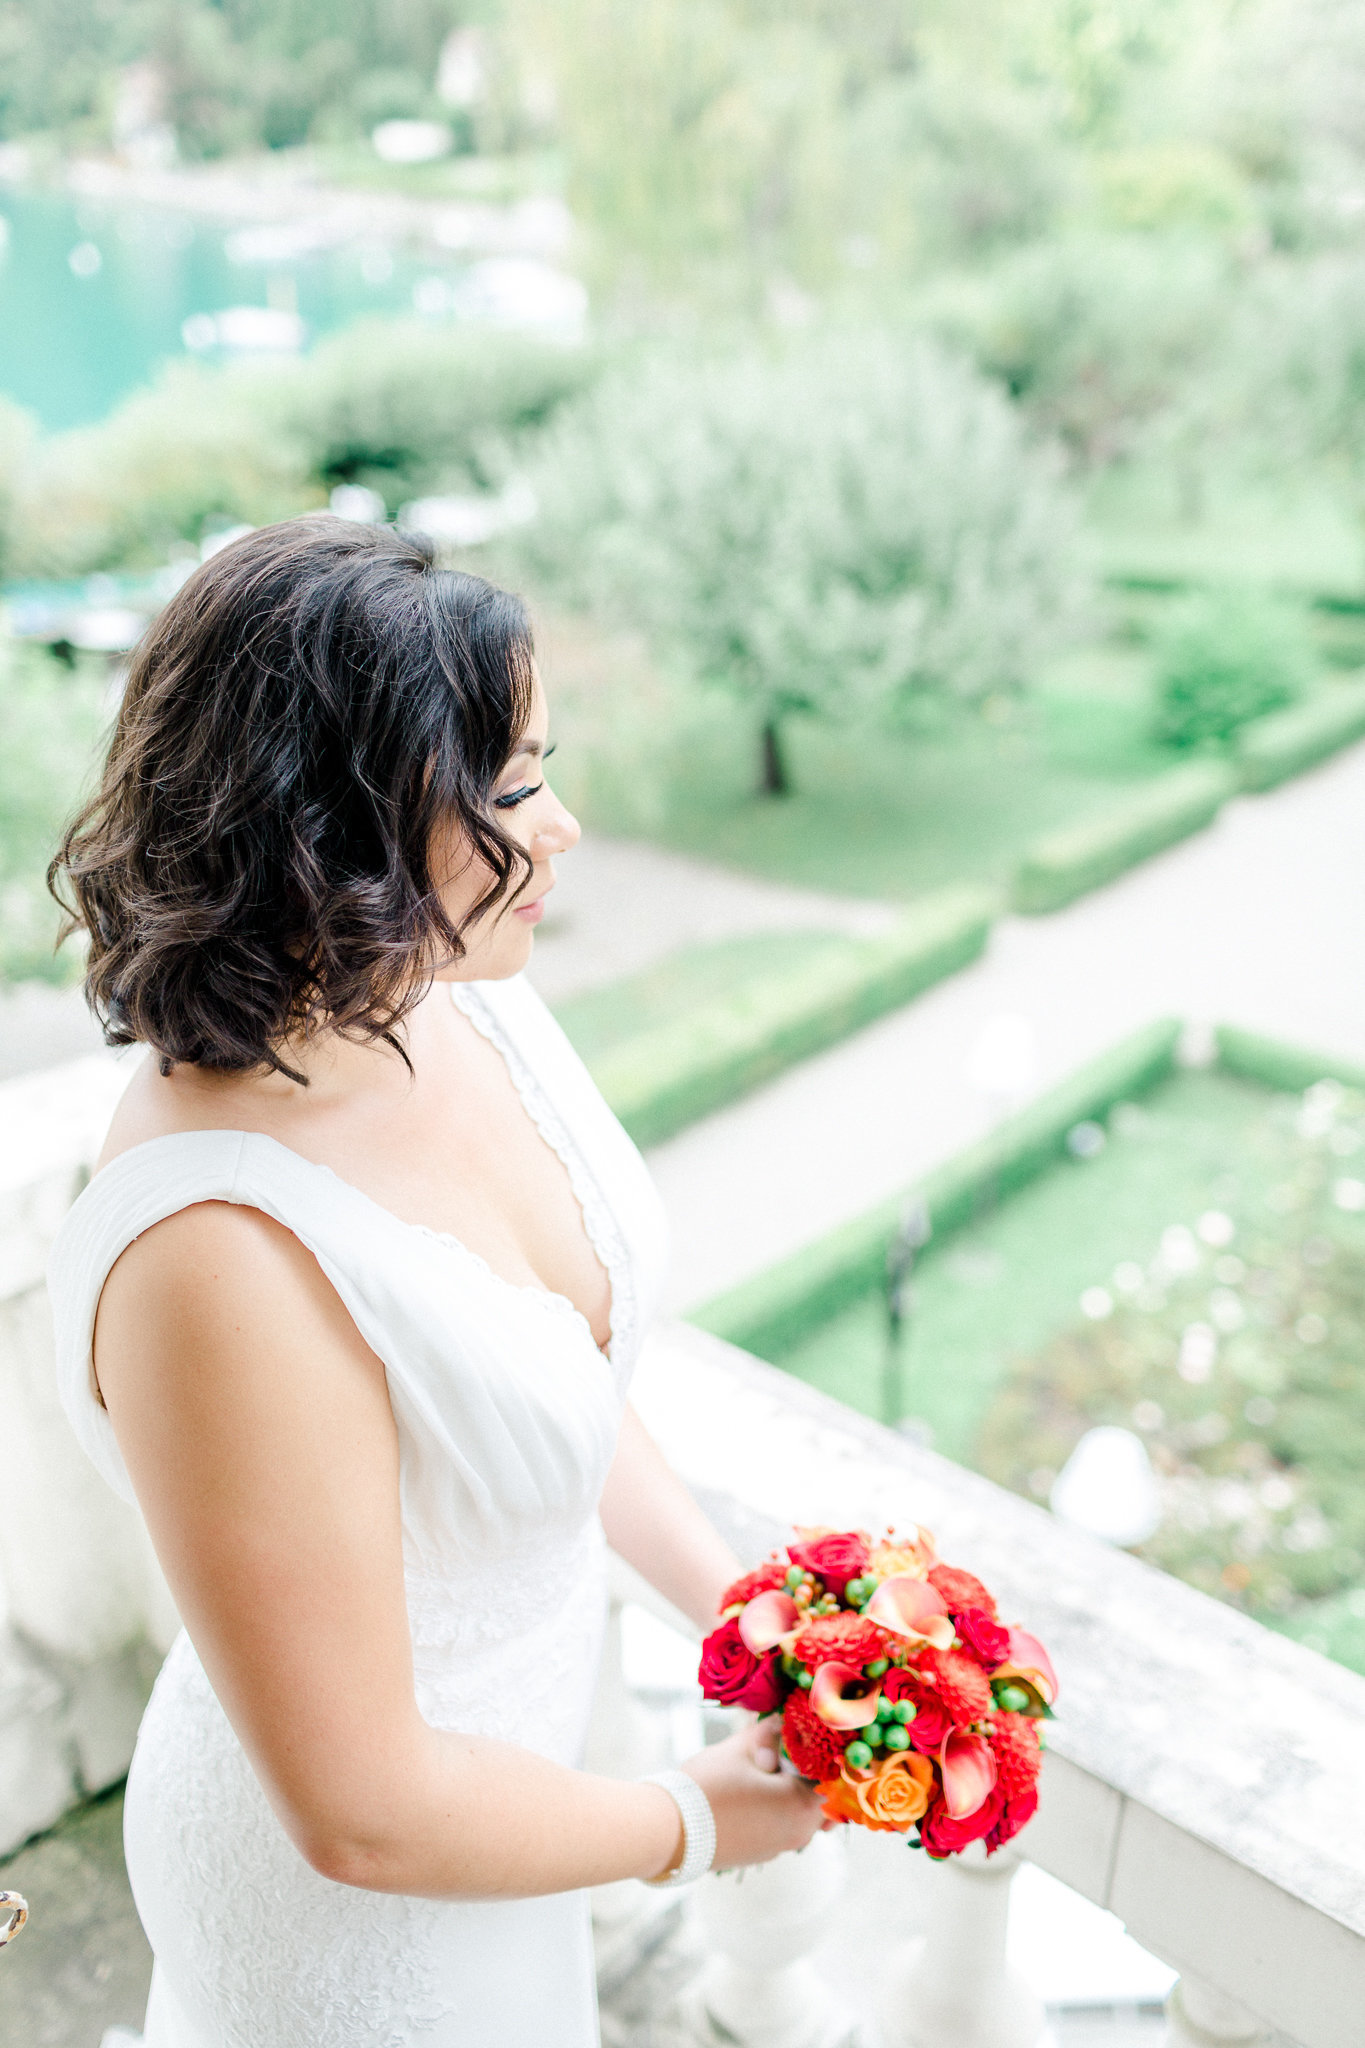 photographe-mariage-talloires-france-lisa-renault-photographie-wedding-destination-photographer-27